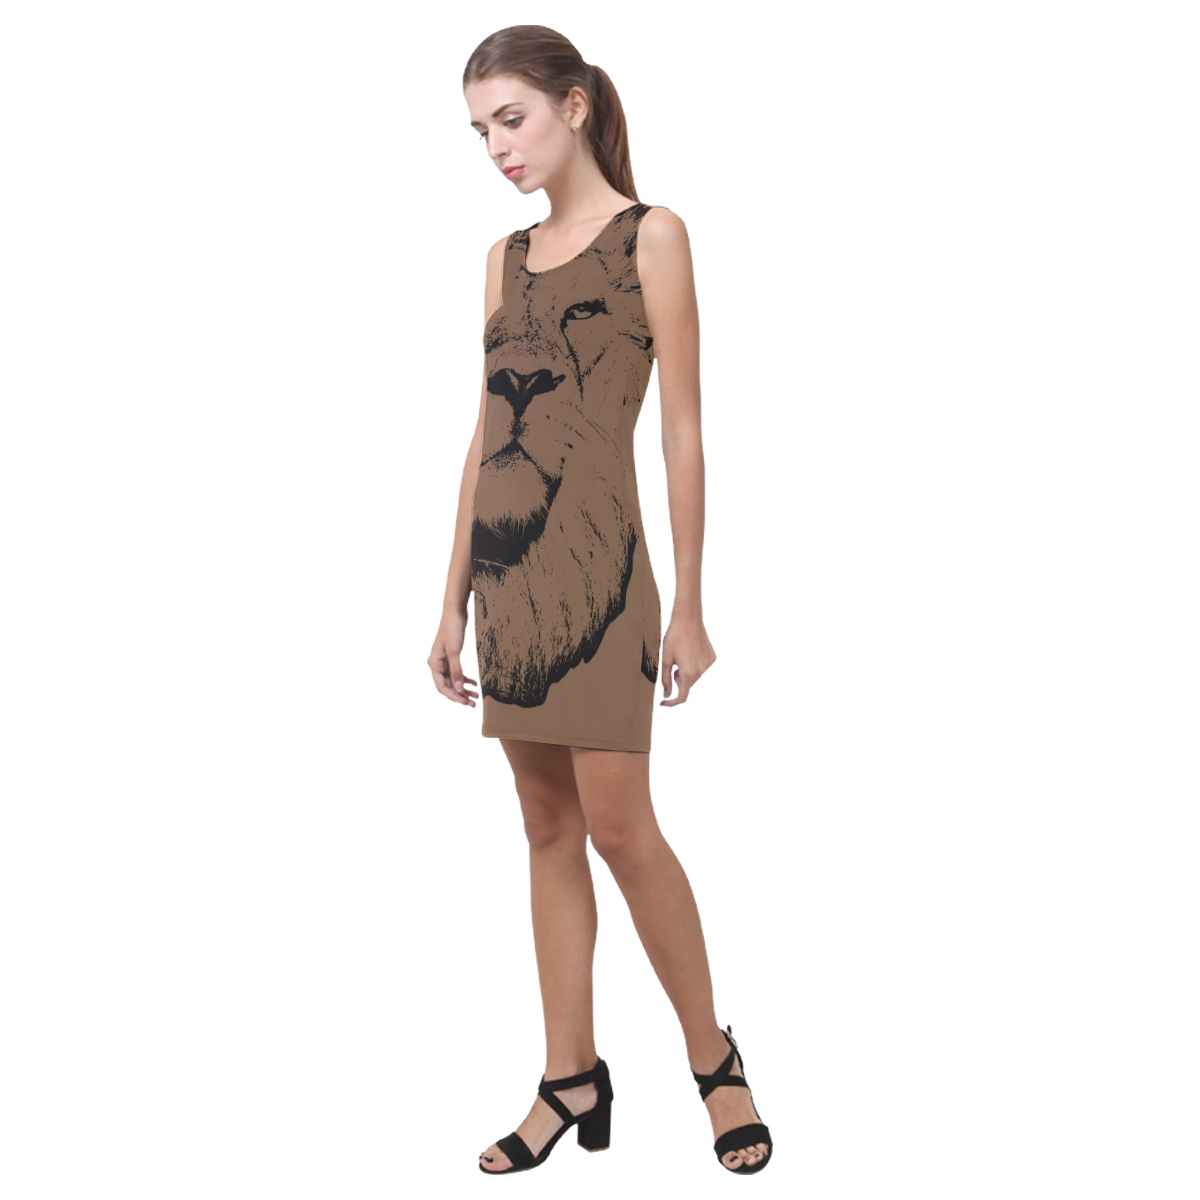 LION SWEET DRESS III Medea Vest Dress (Model D06)